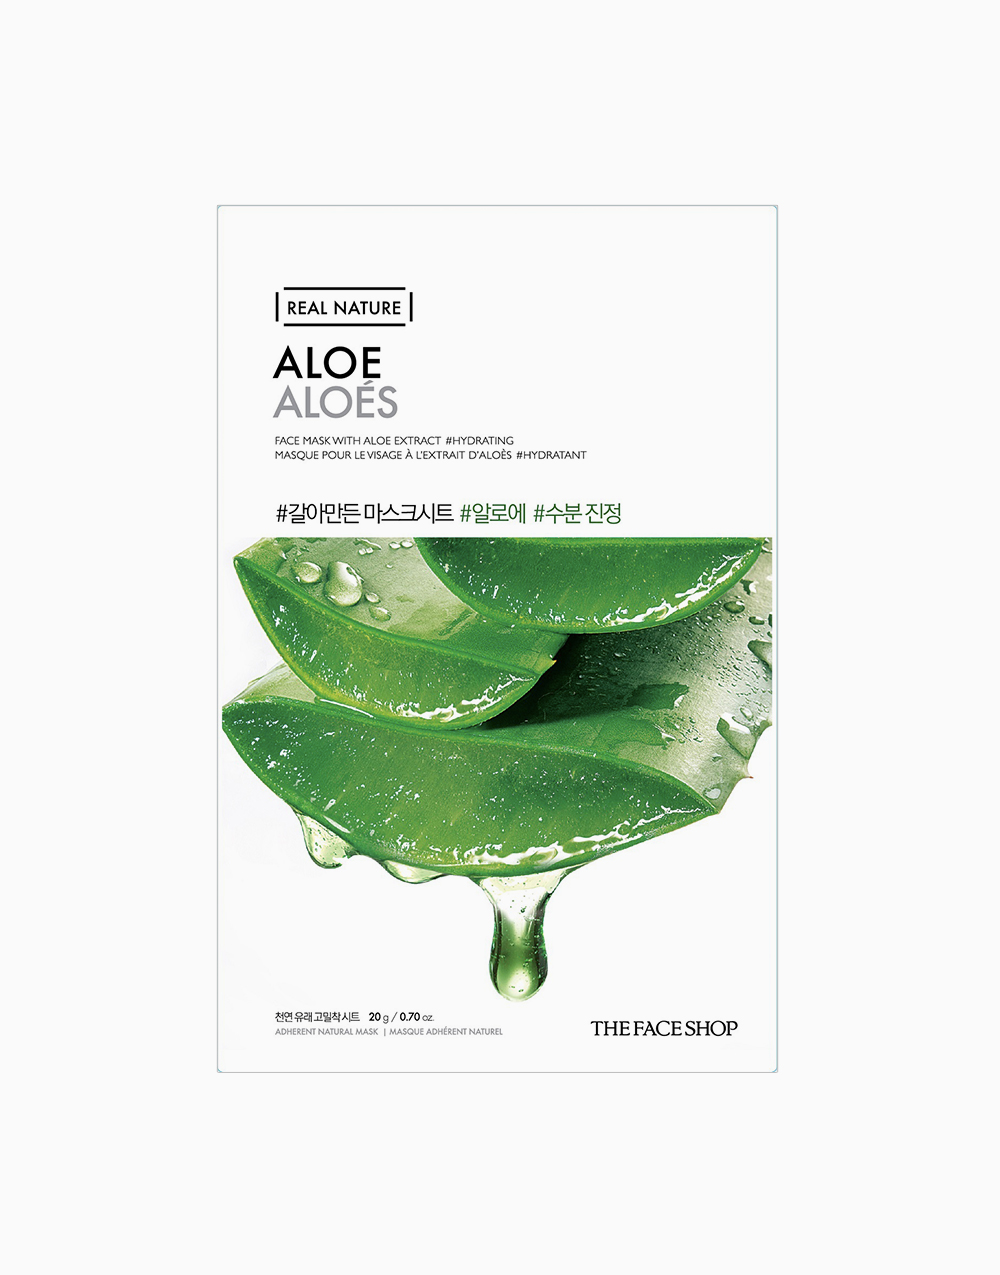 Real Nature Aloe Vera Face Mask by The Face Shop